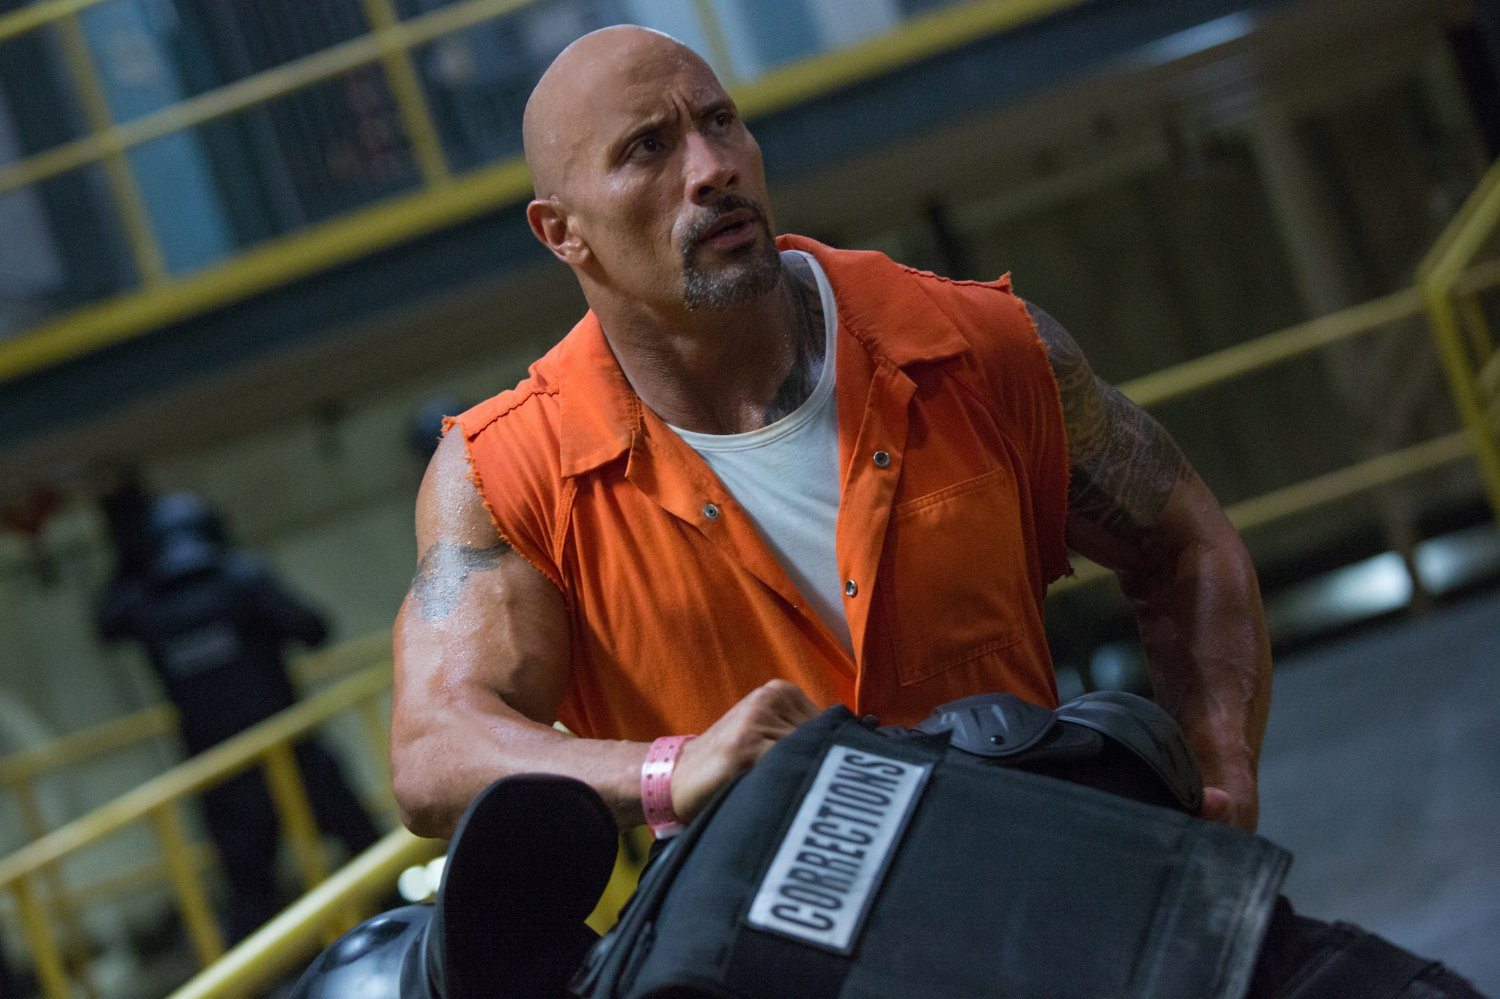 Fast and Furious 8: The Fate of the Furious